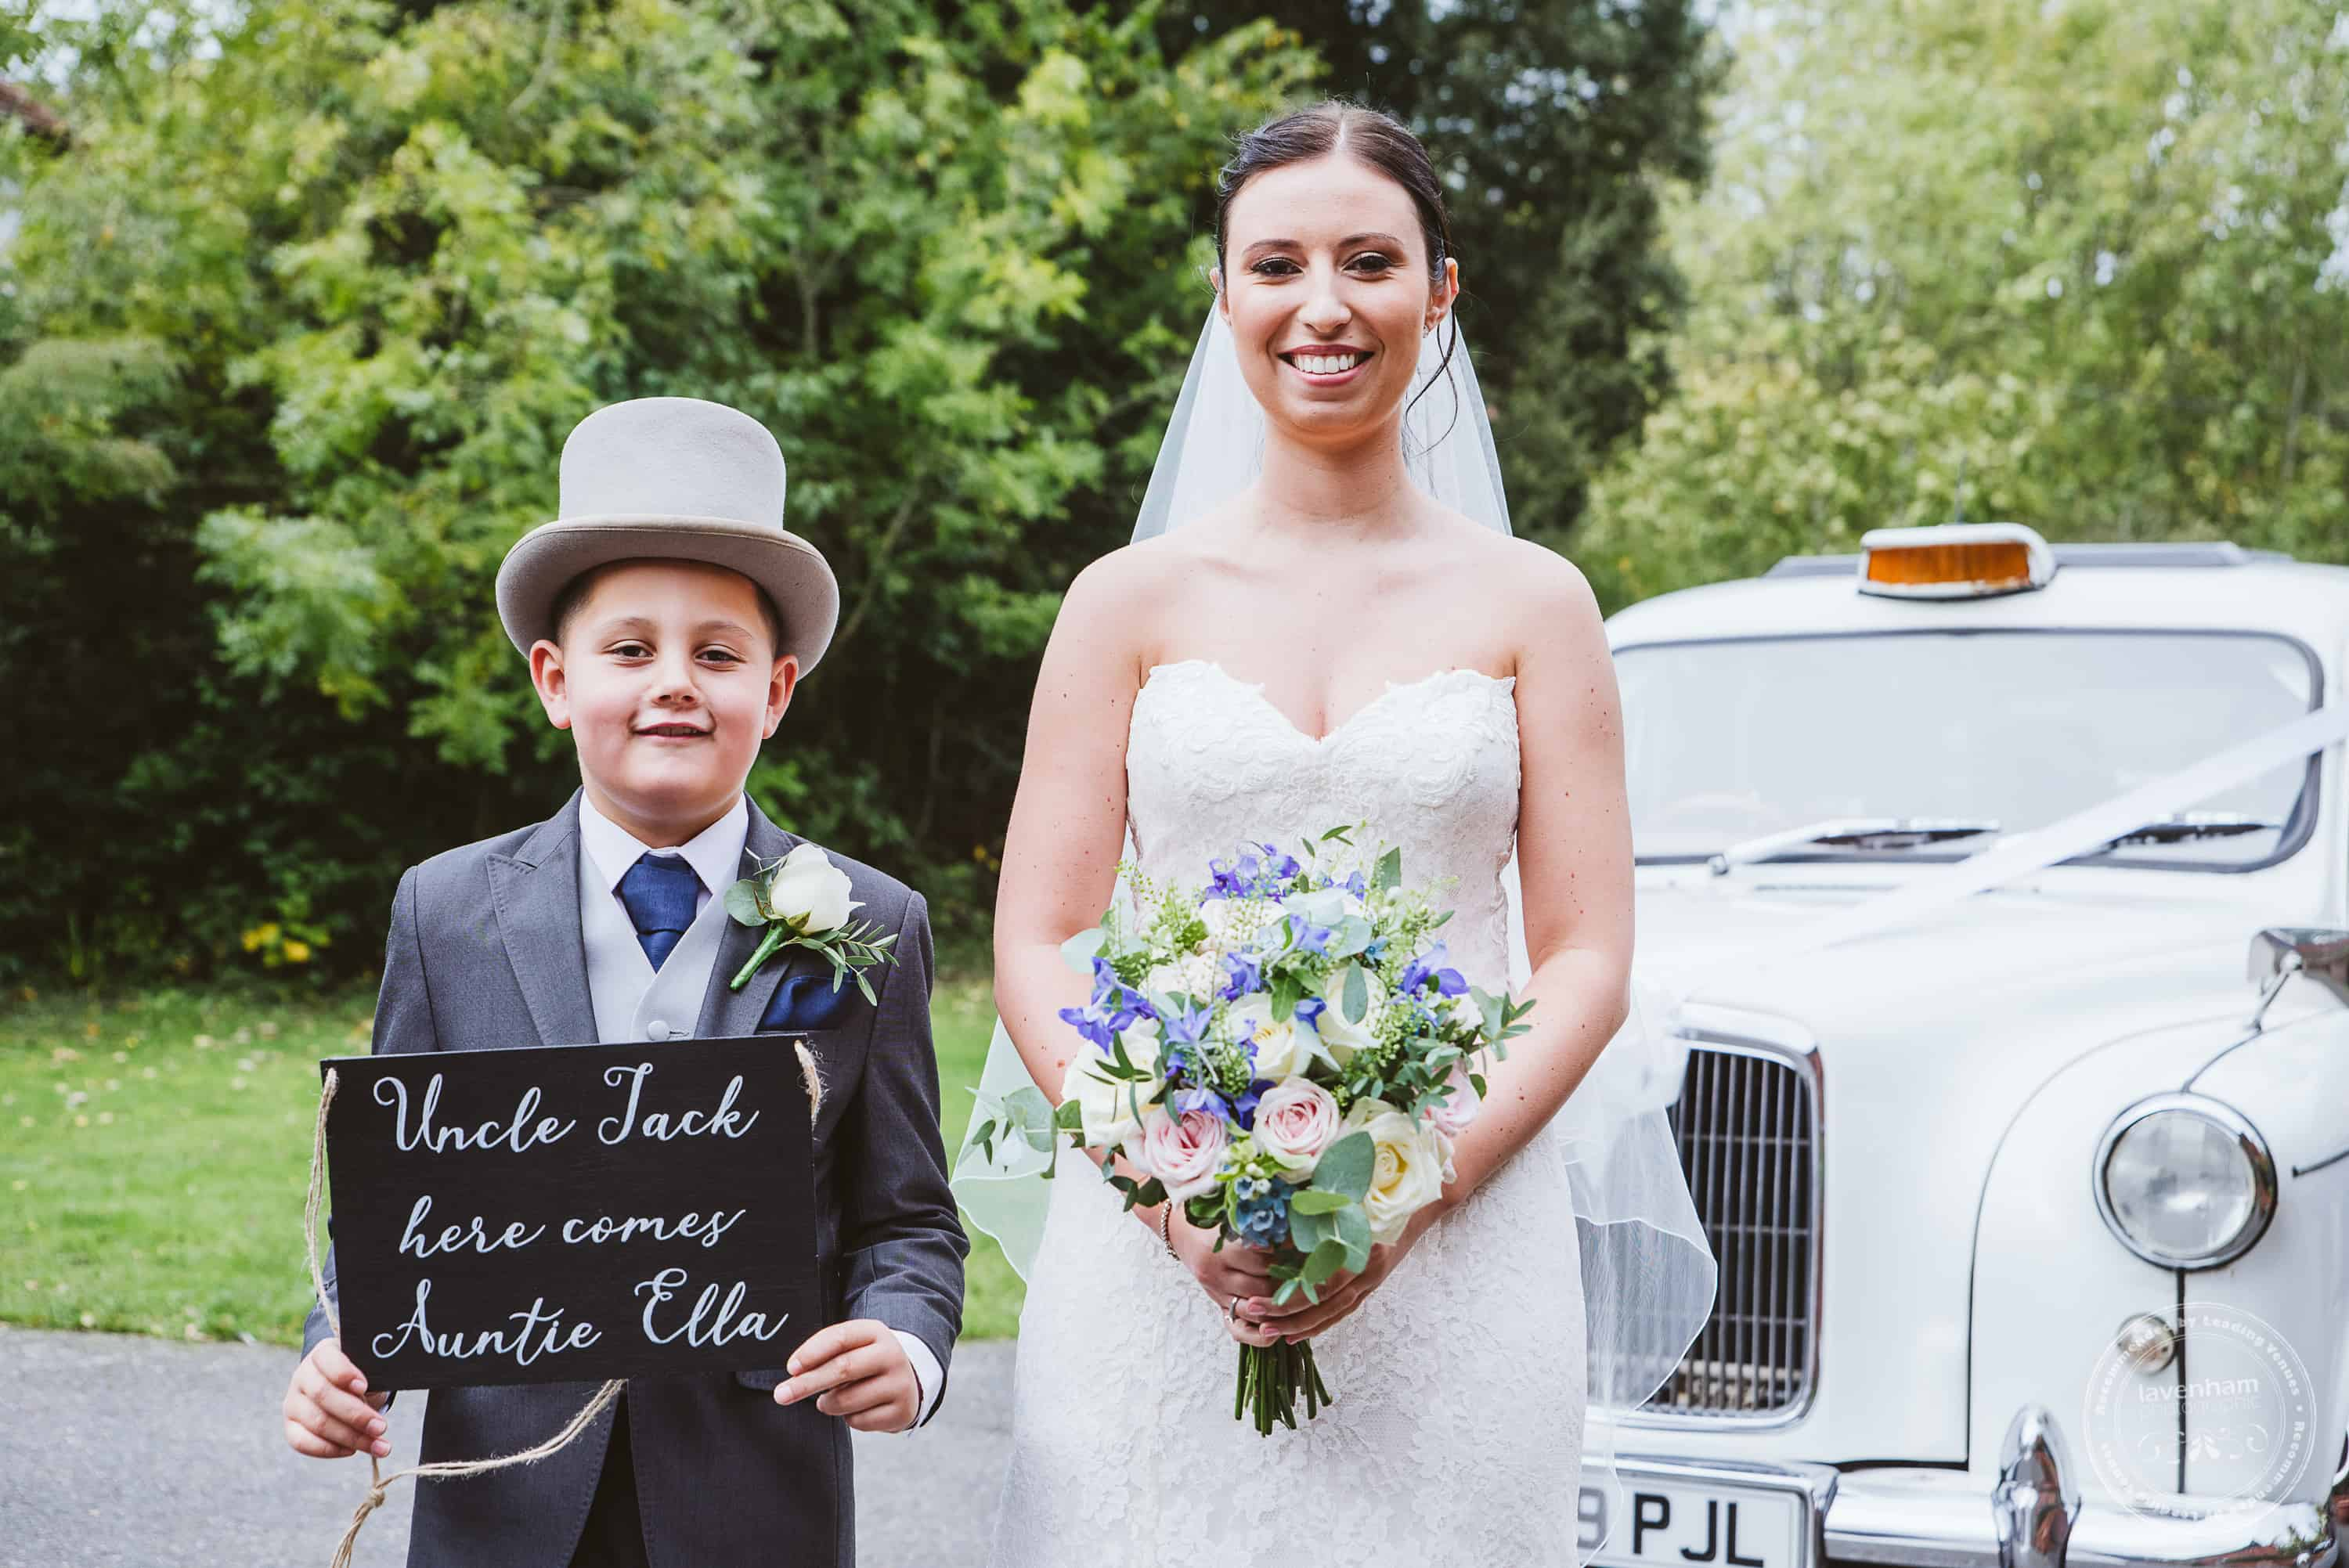 261019 Bull and Willow Room Essex Wedding Photographer 021